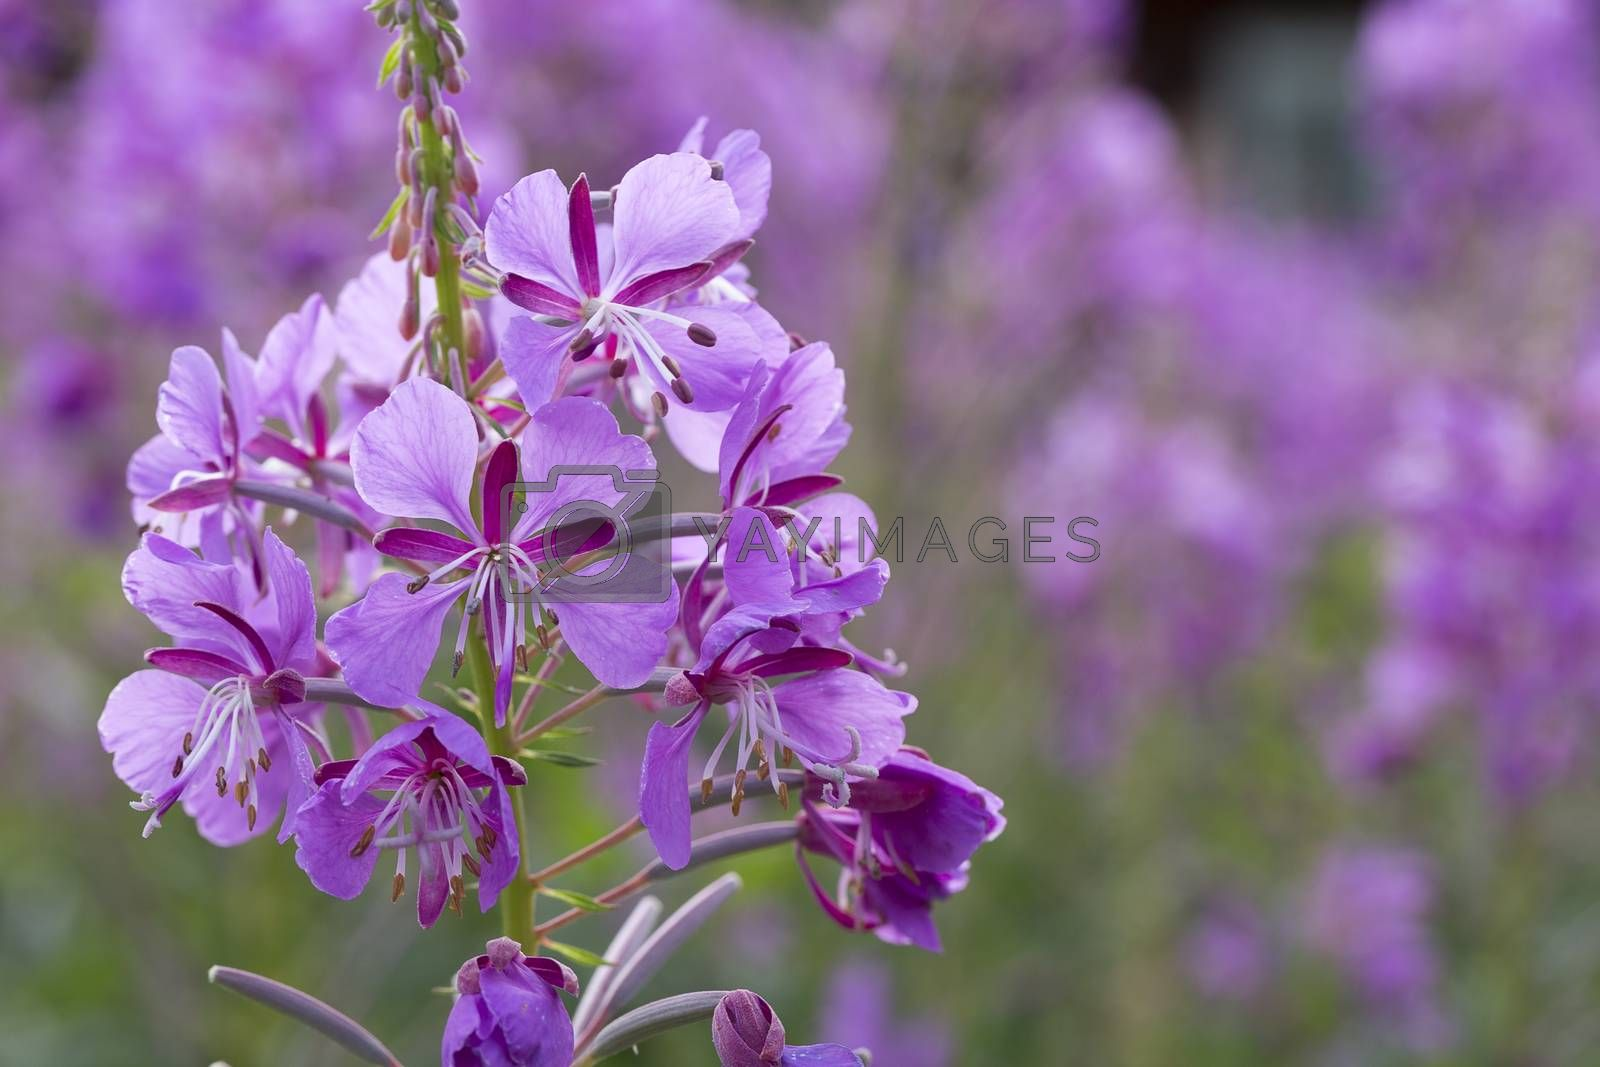 Fireweed Flowers close up by Emmoth